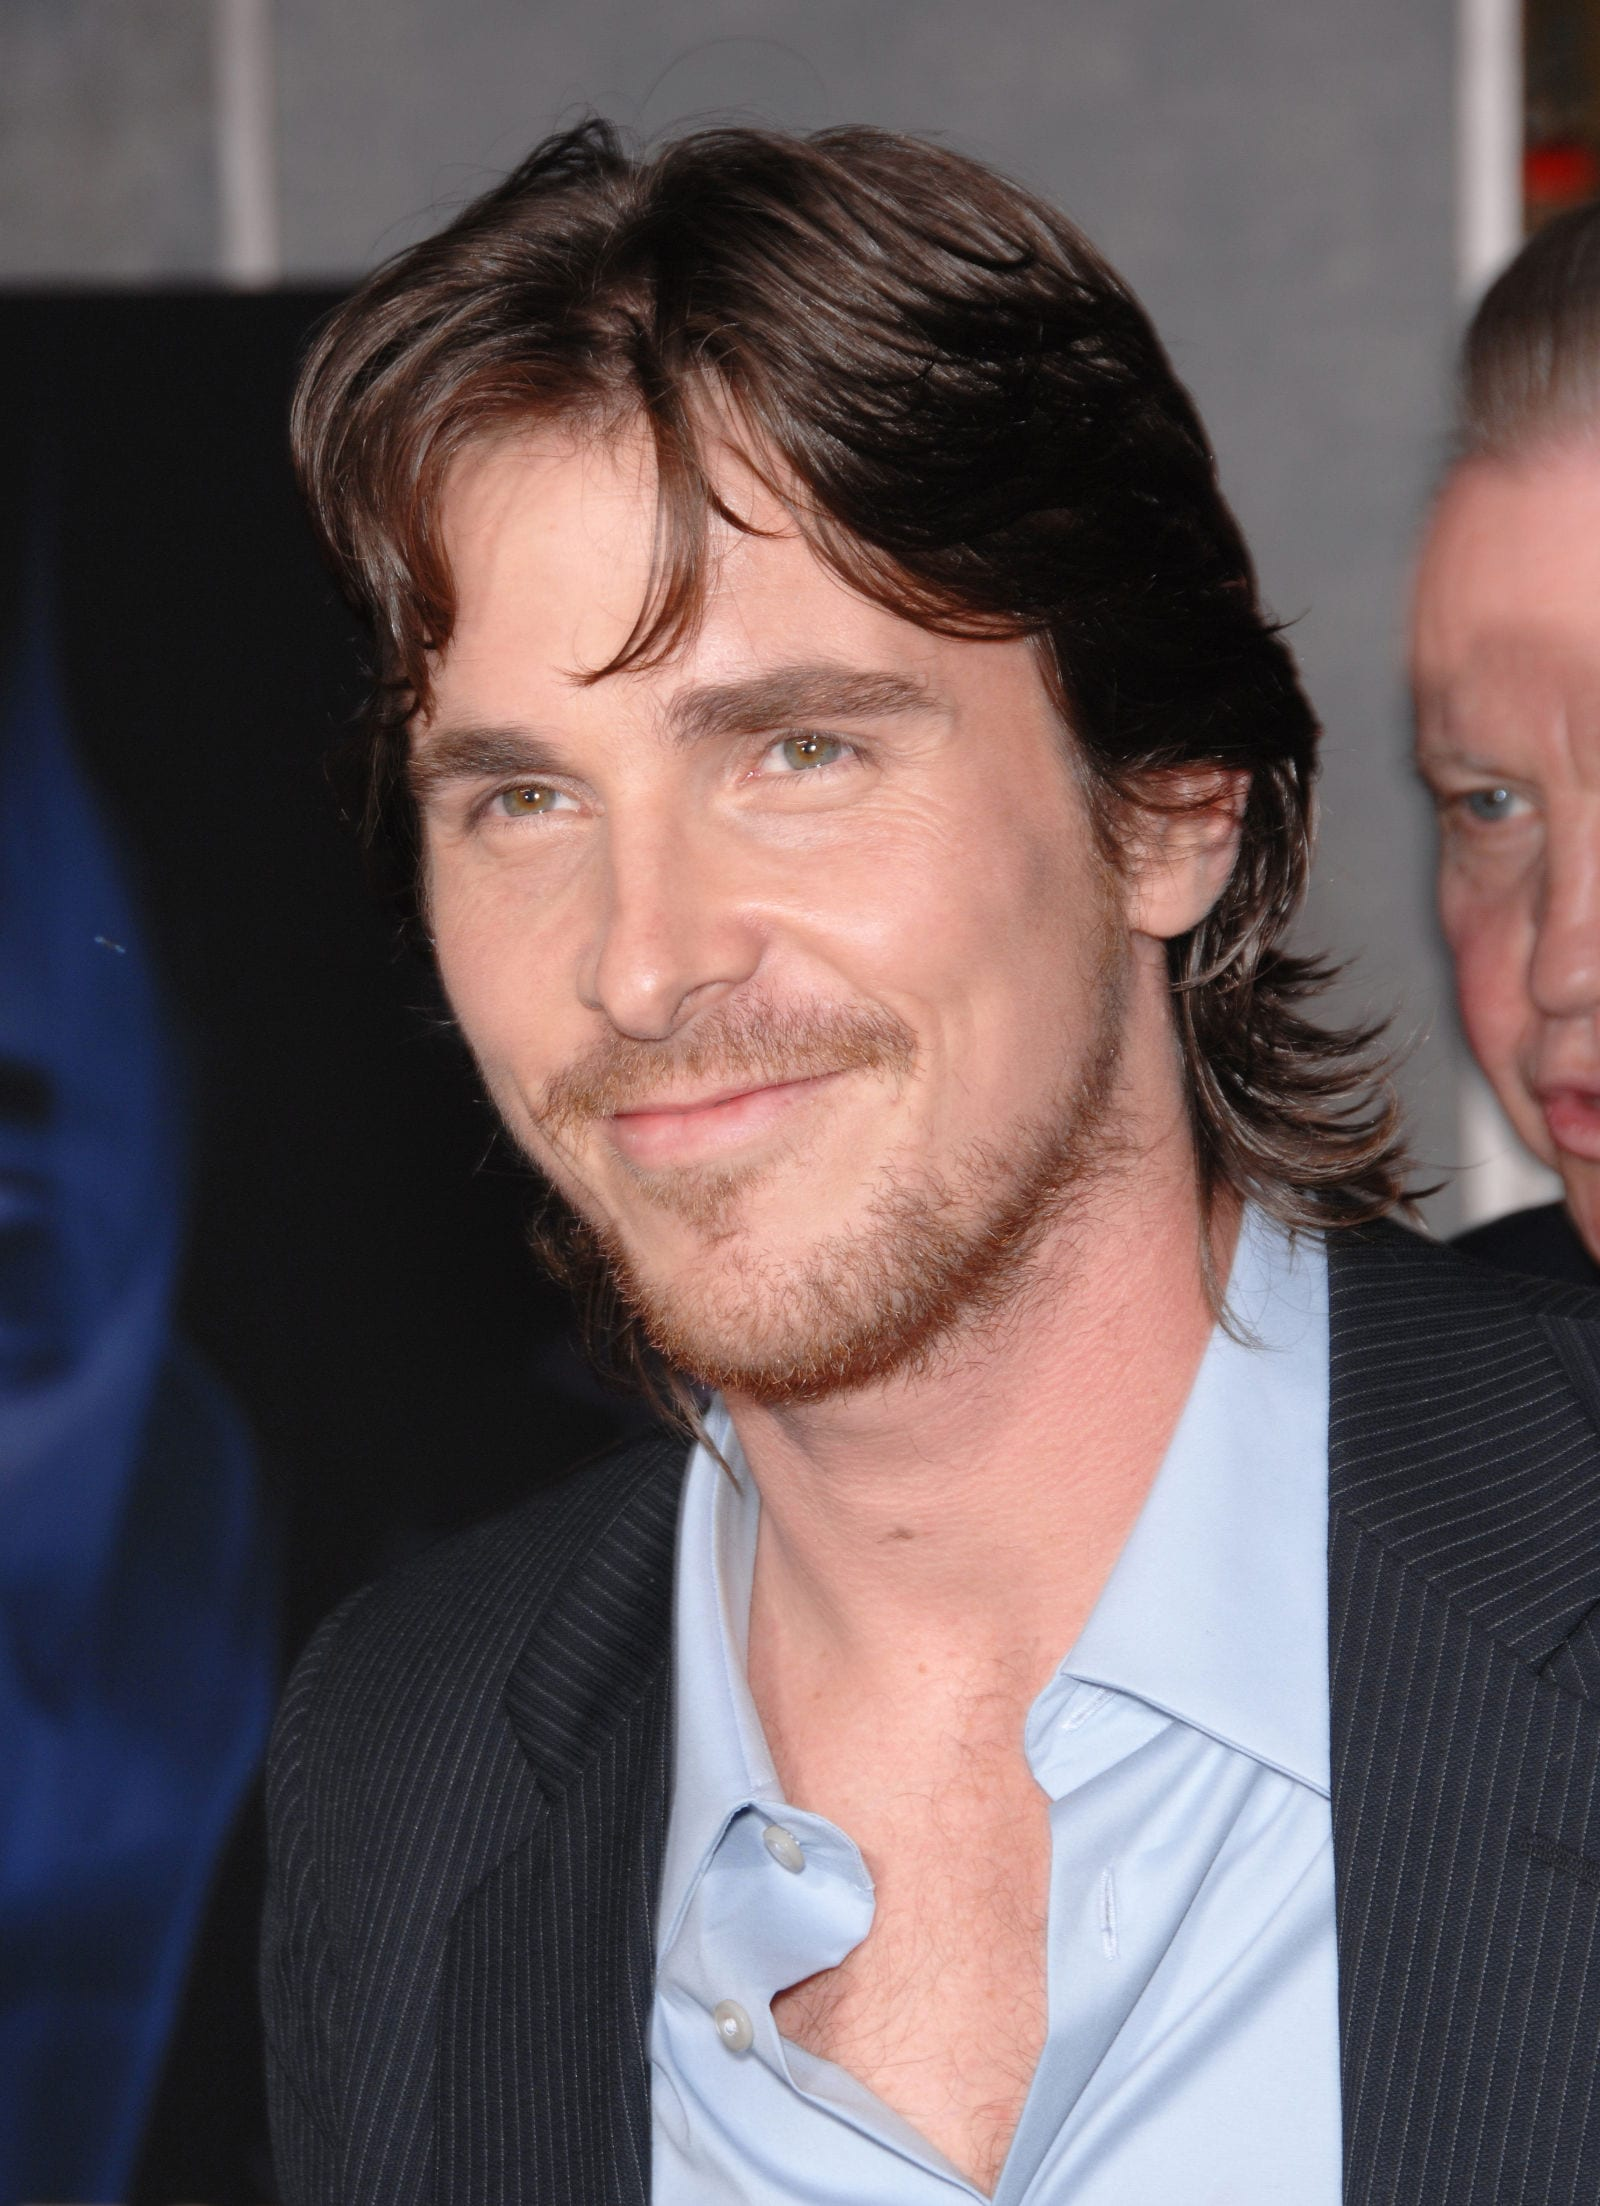 CHRISTIAN BALE modern mullet curtained hairstyle by Featureflash Photo Agency